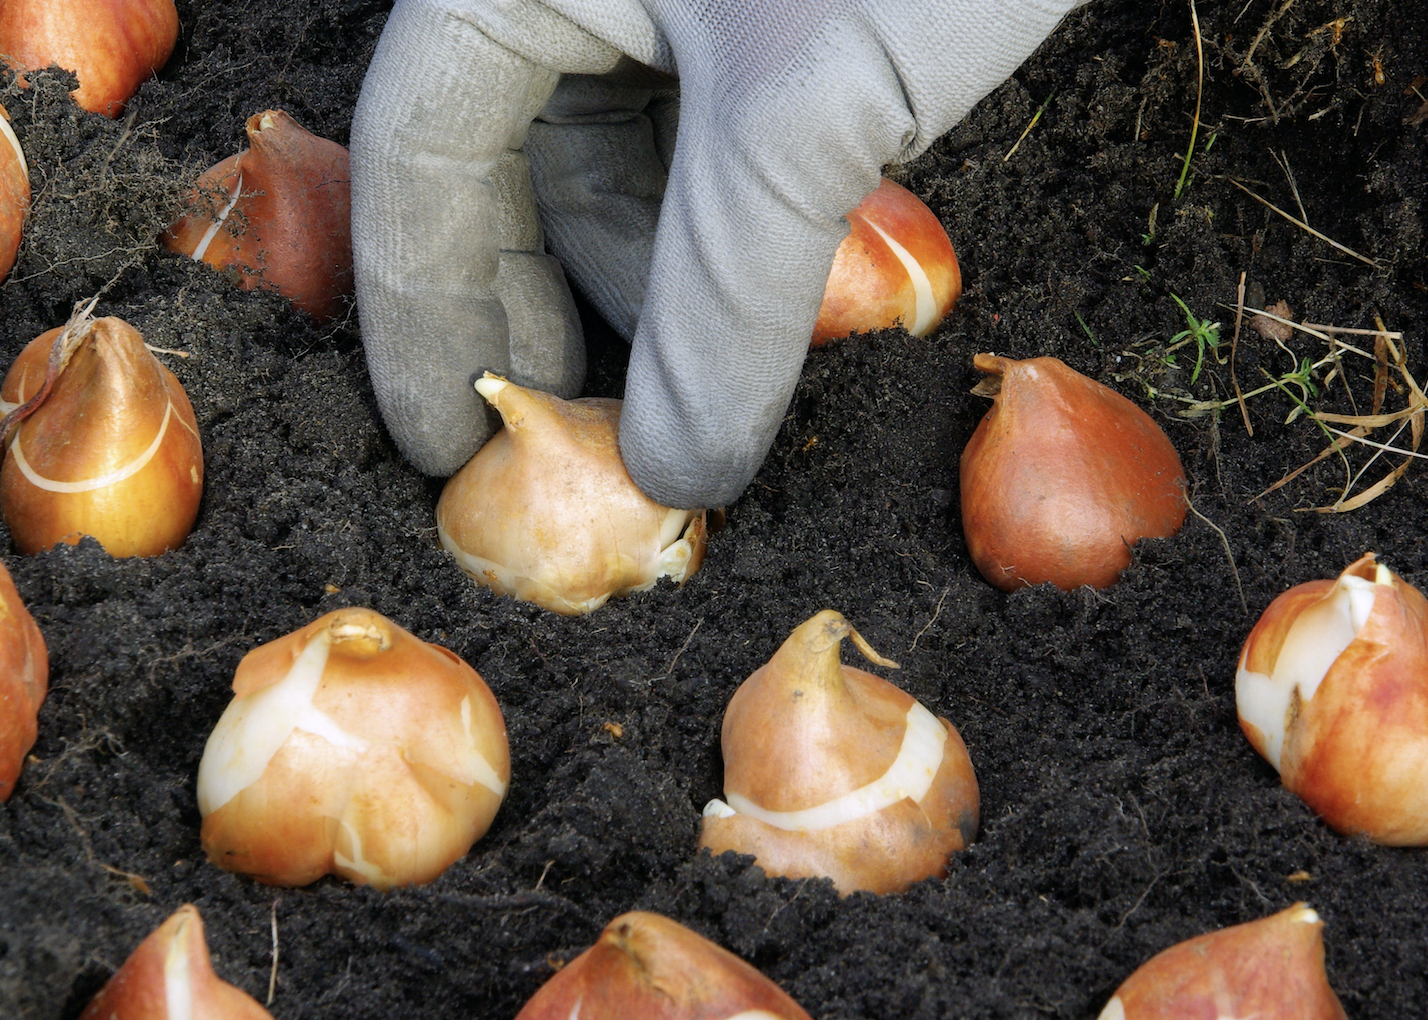 A hand with a a grey glove on planting a series of bulbs in the soil.